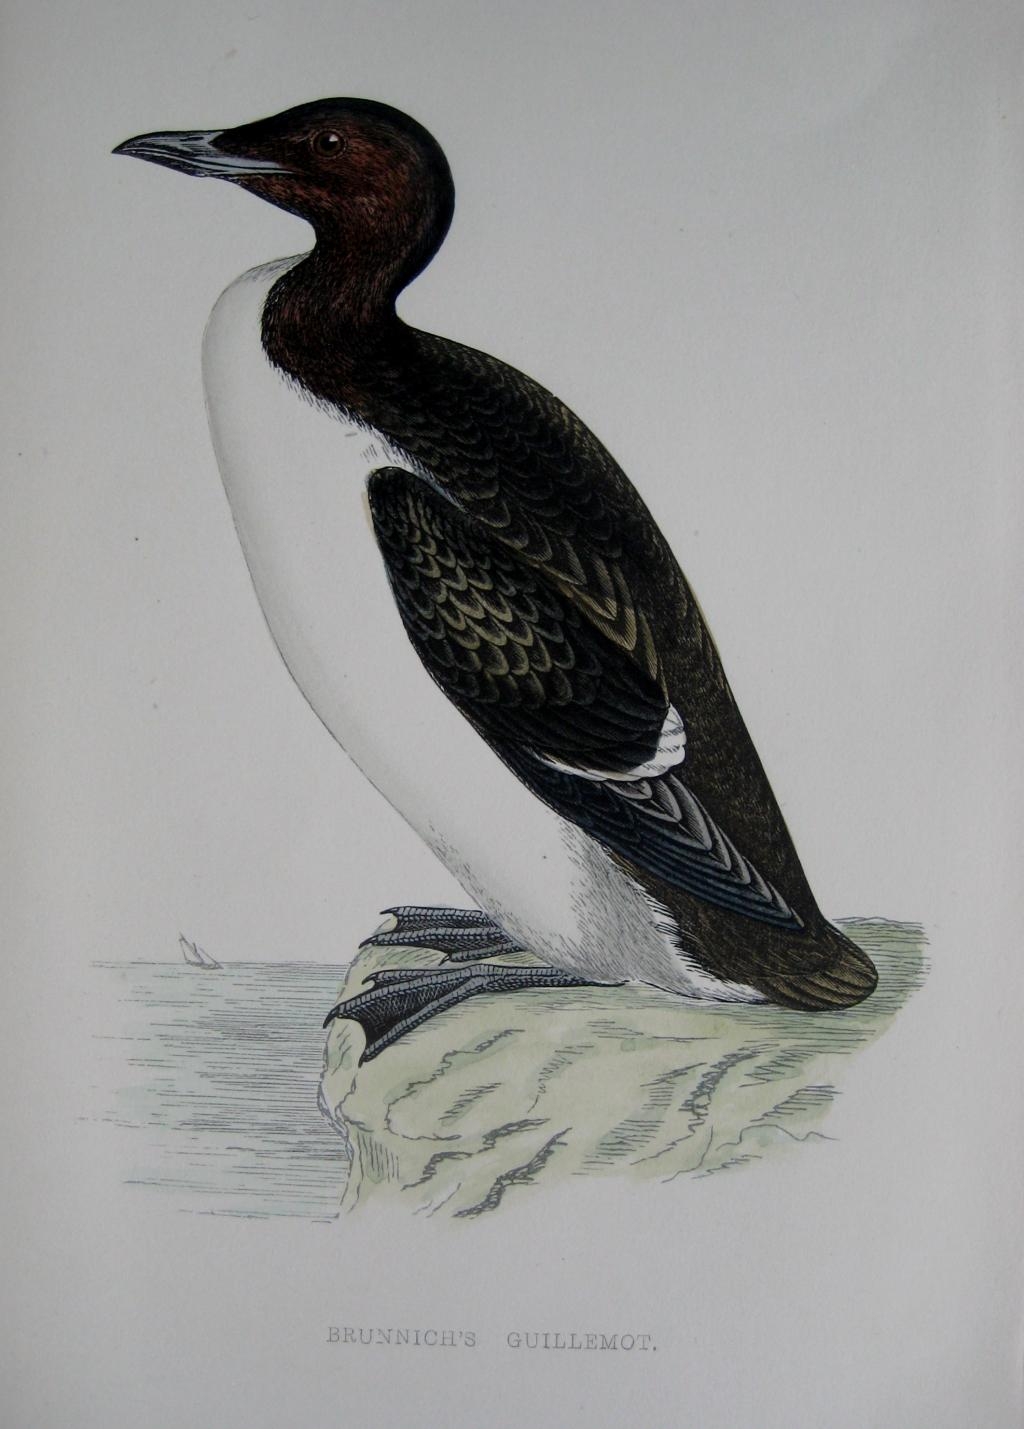 GUILLEMOT by REV F.O. MORRIS c1851